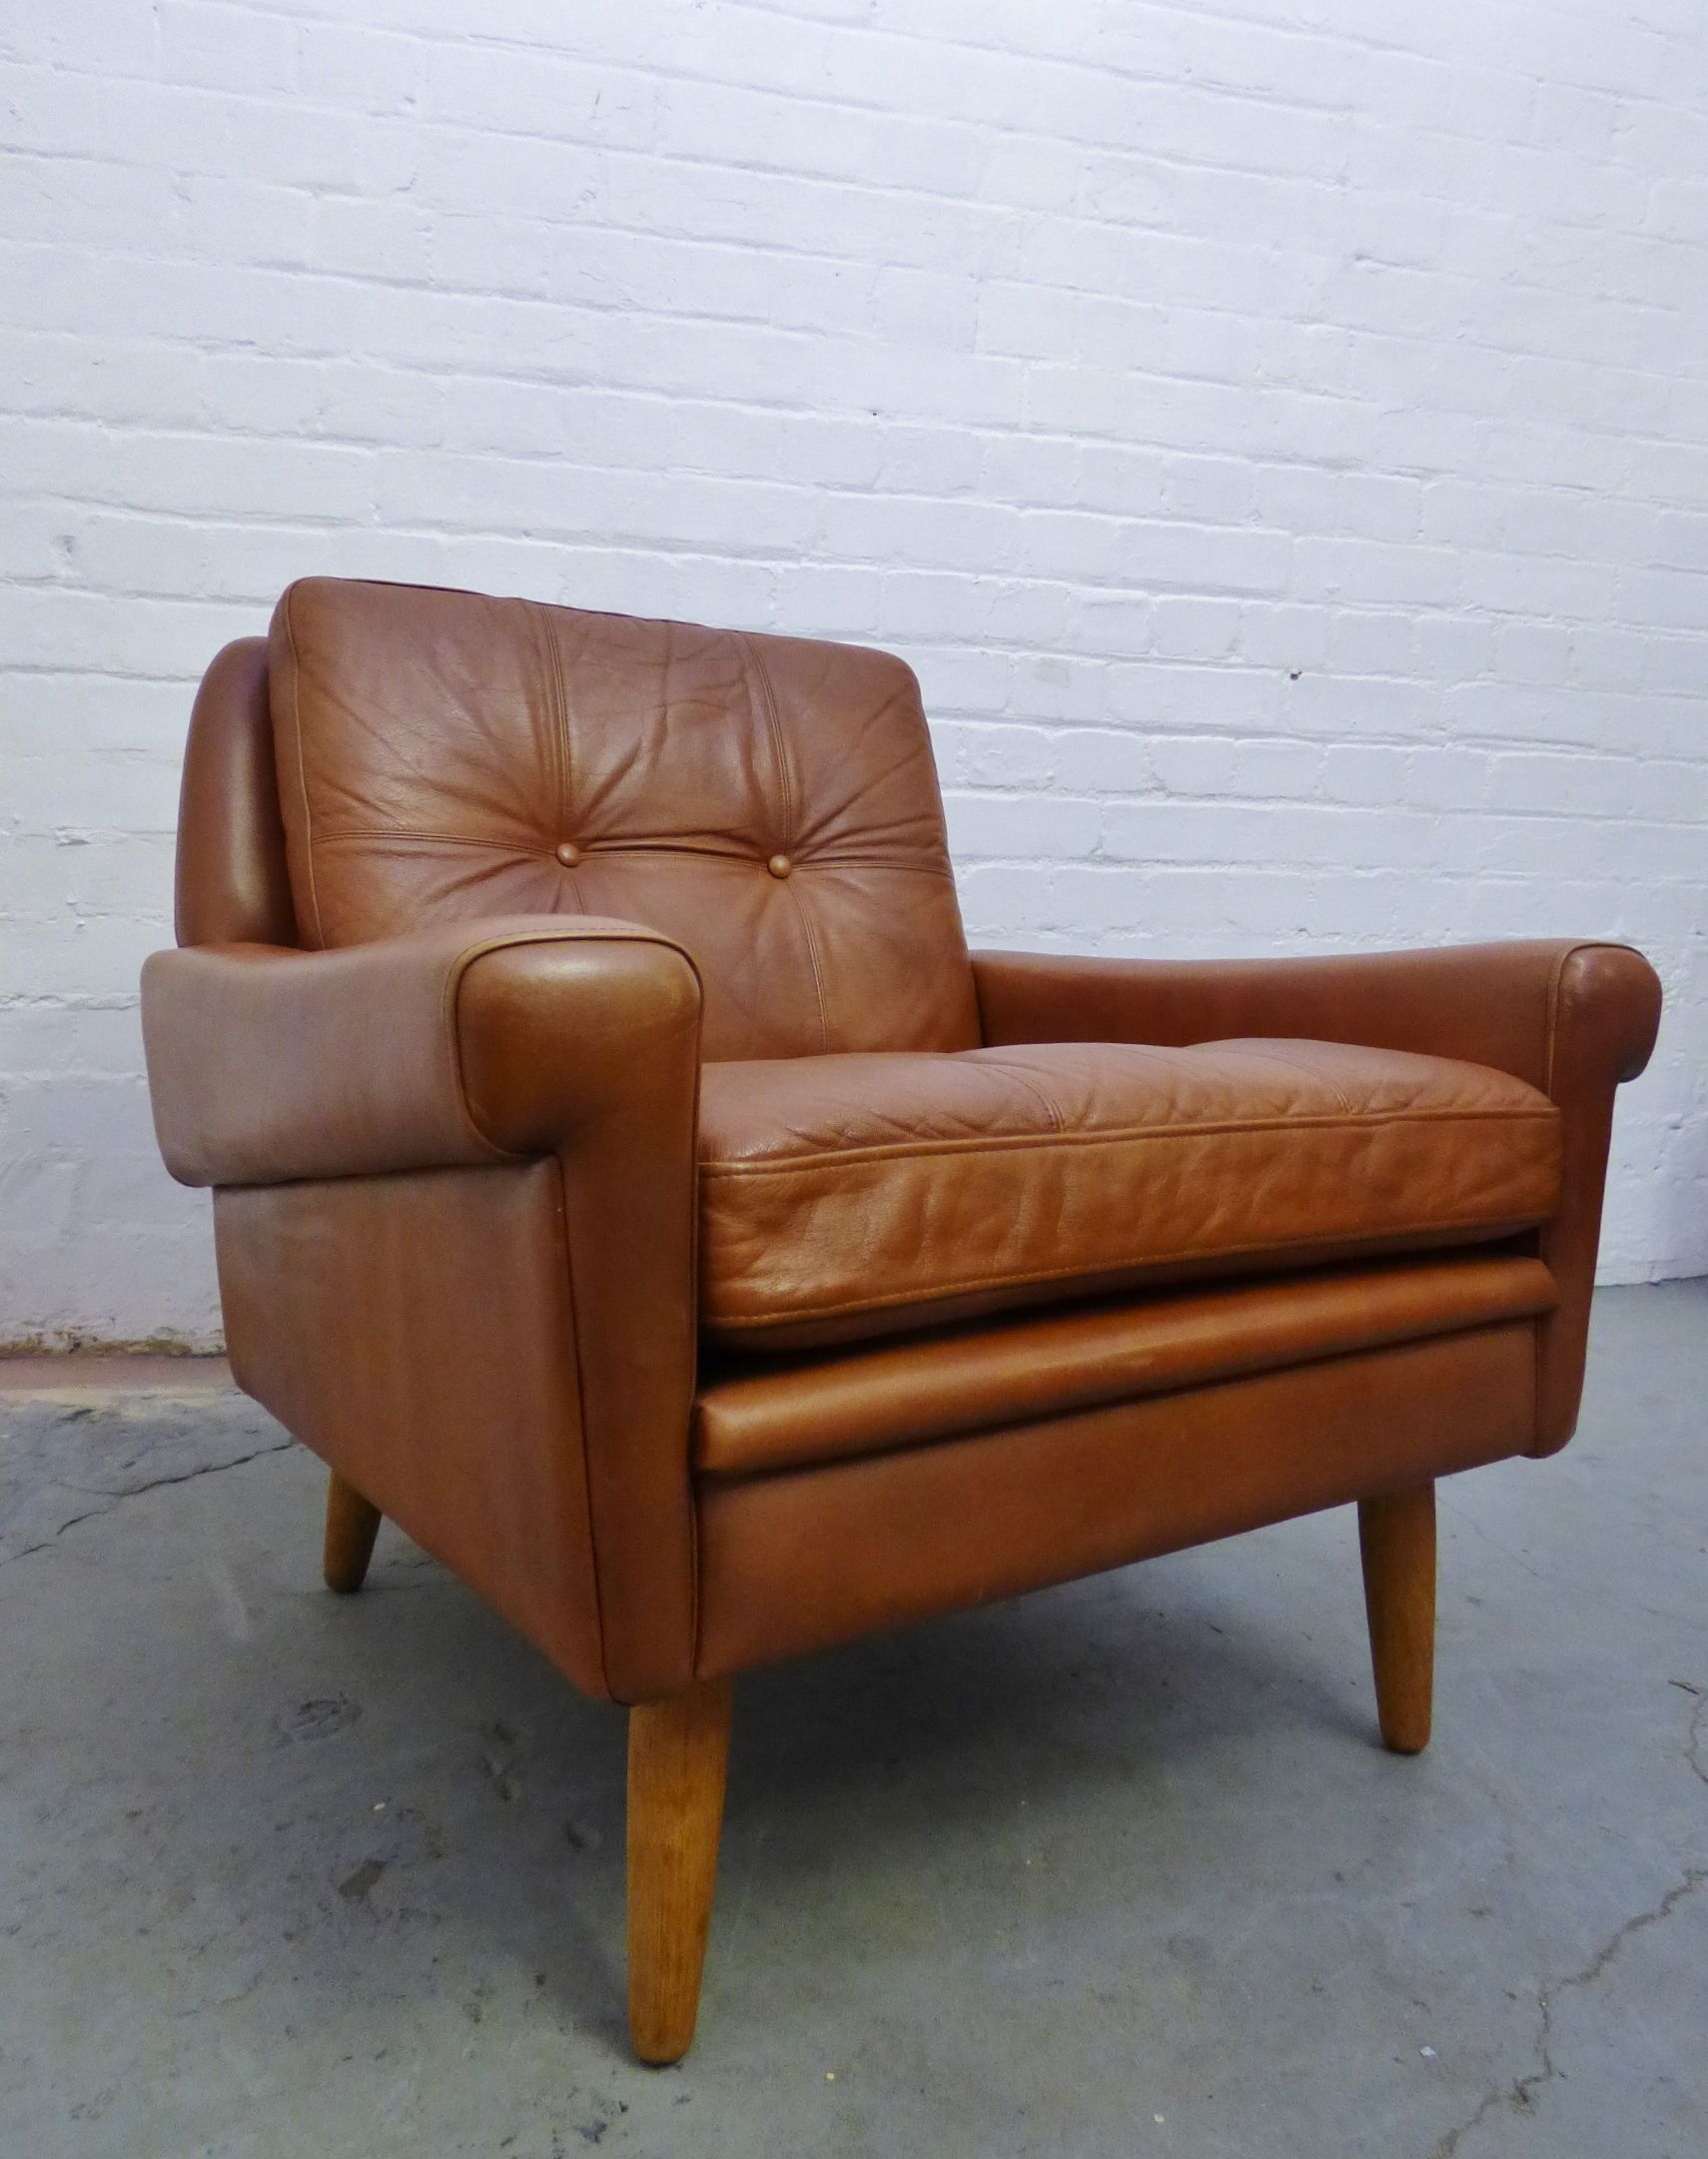 1960s tan leather armchair by Skipper Furniture, Denmark